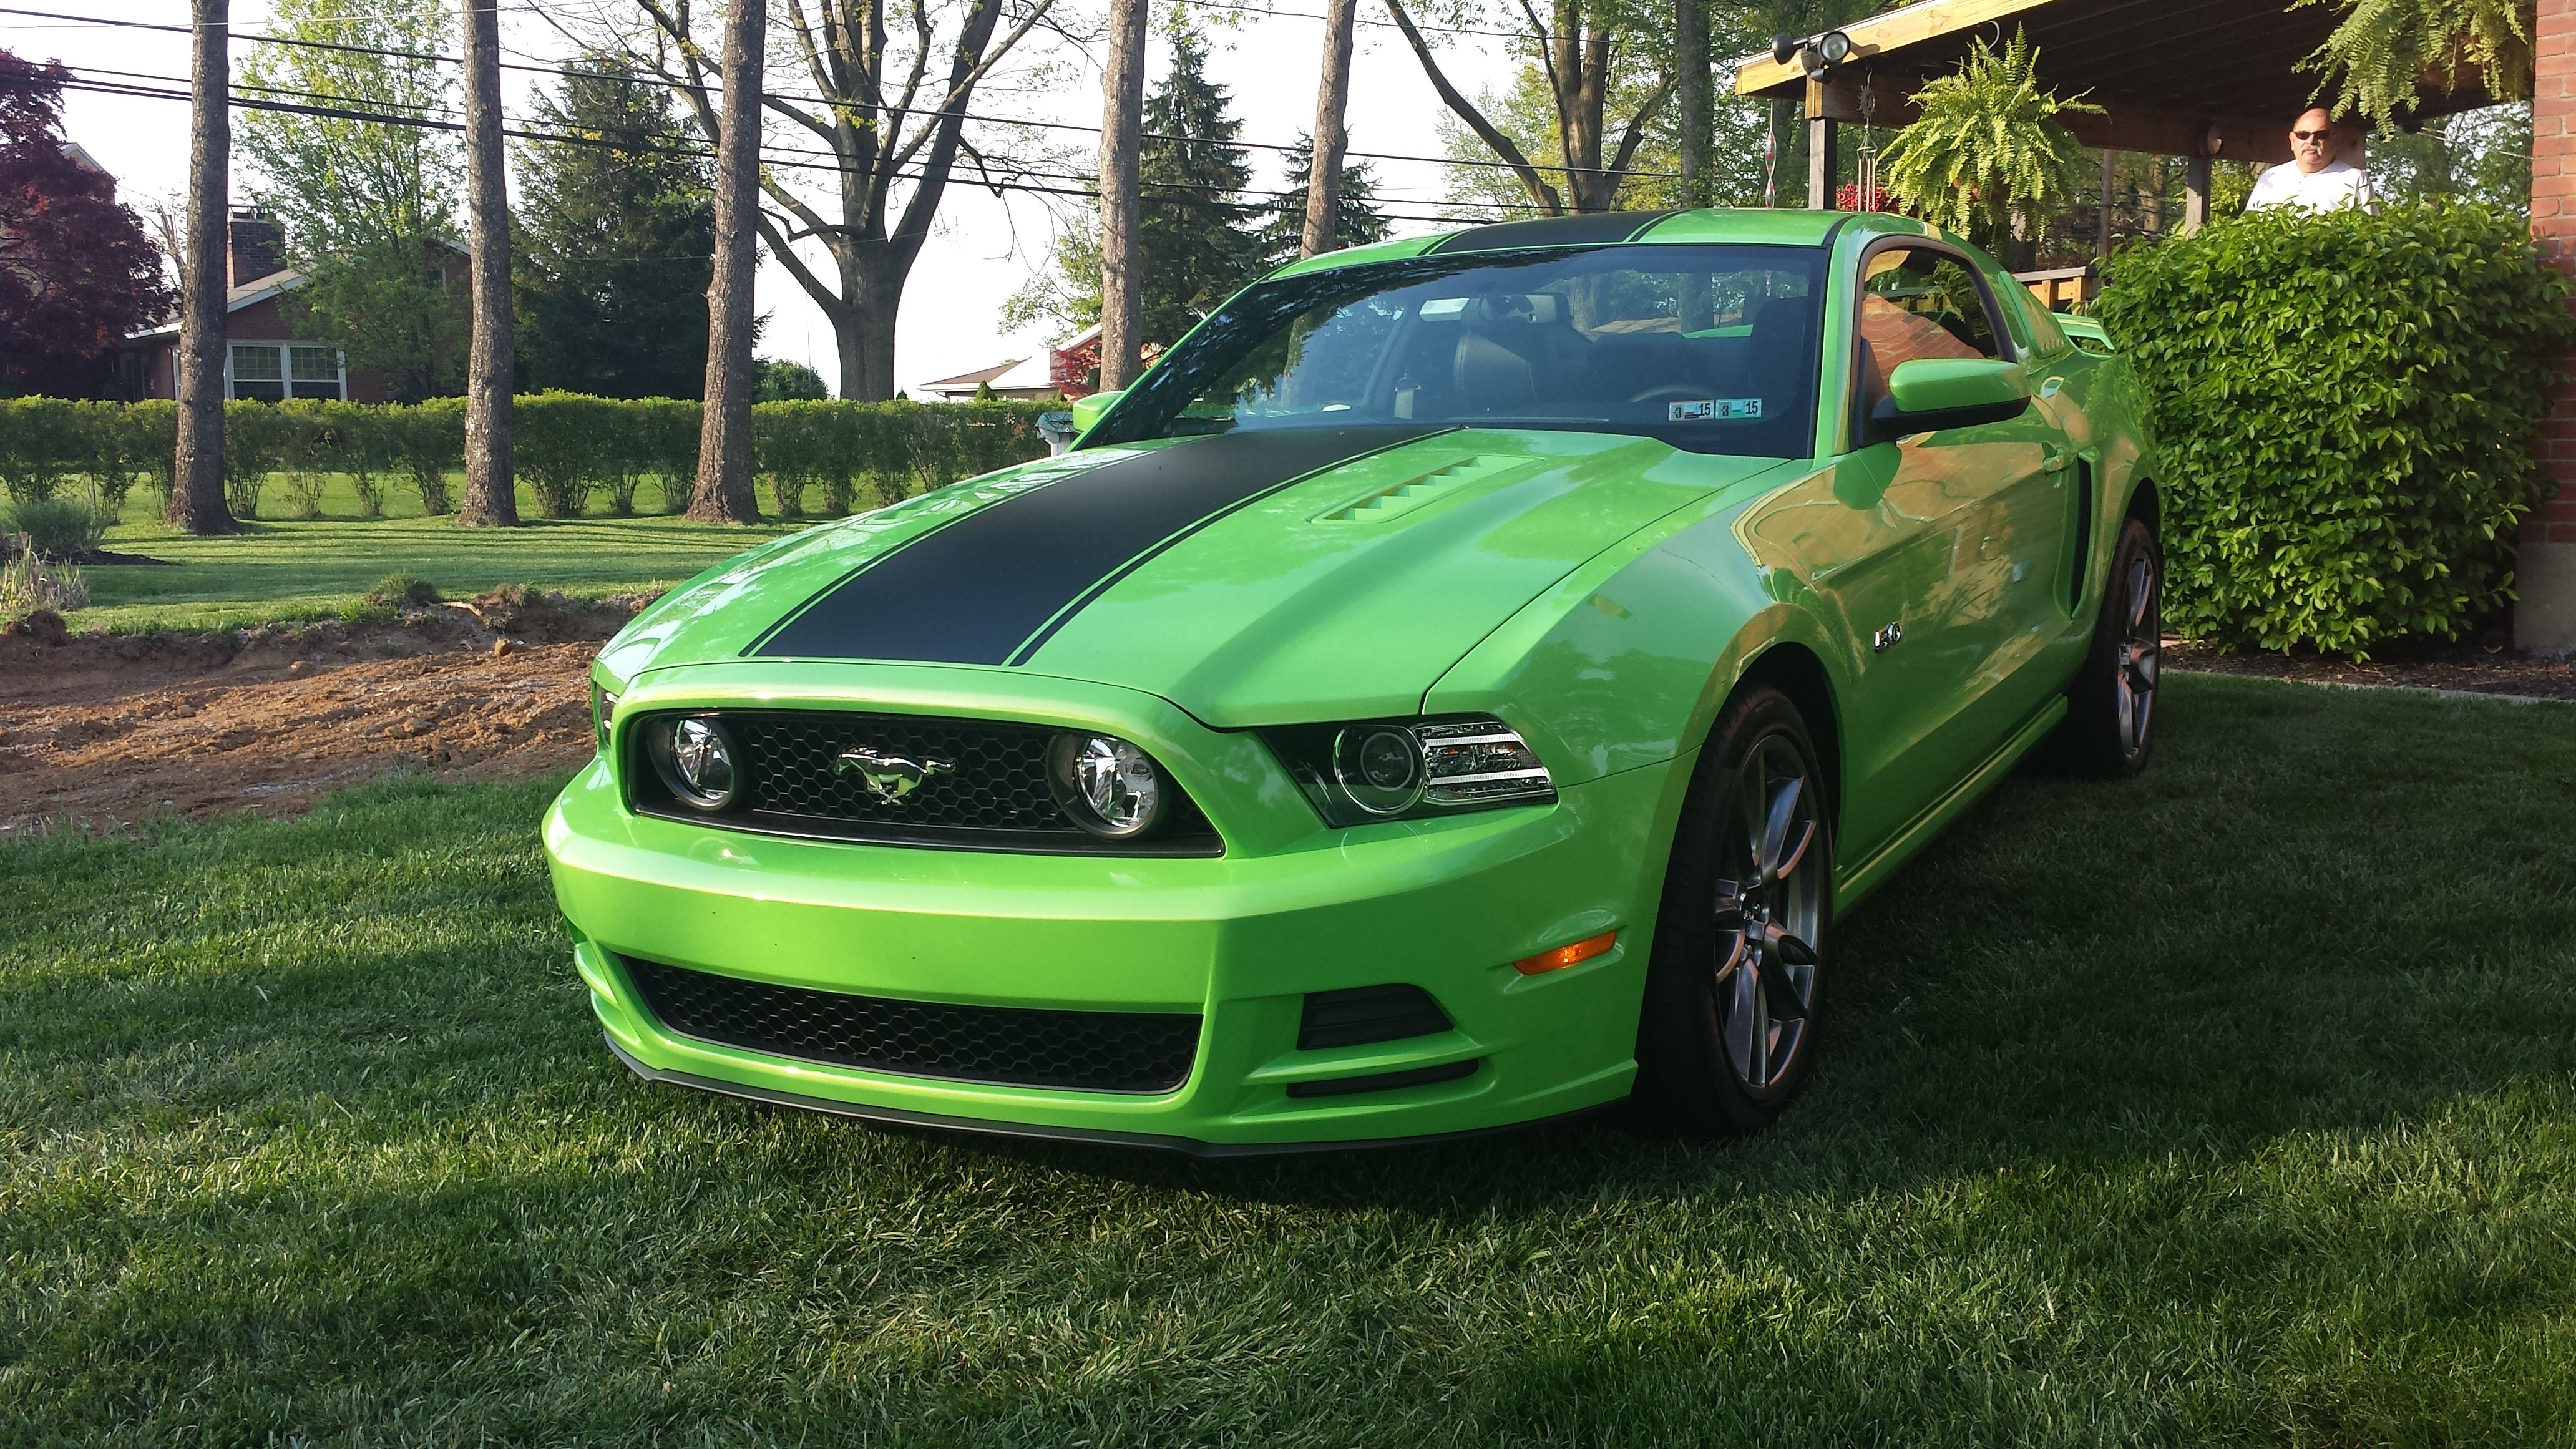 2014 Ford Mustang GT 5 0 Coyote motor in Gotta have it green